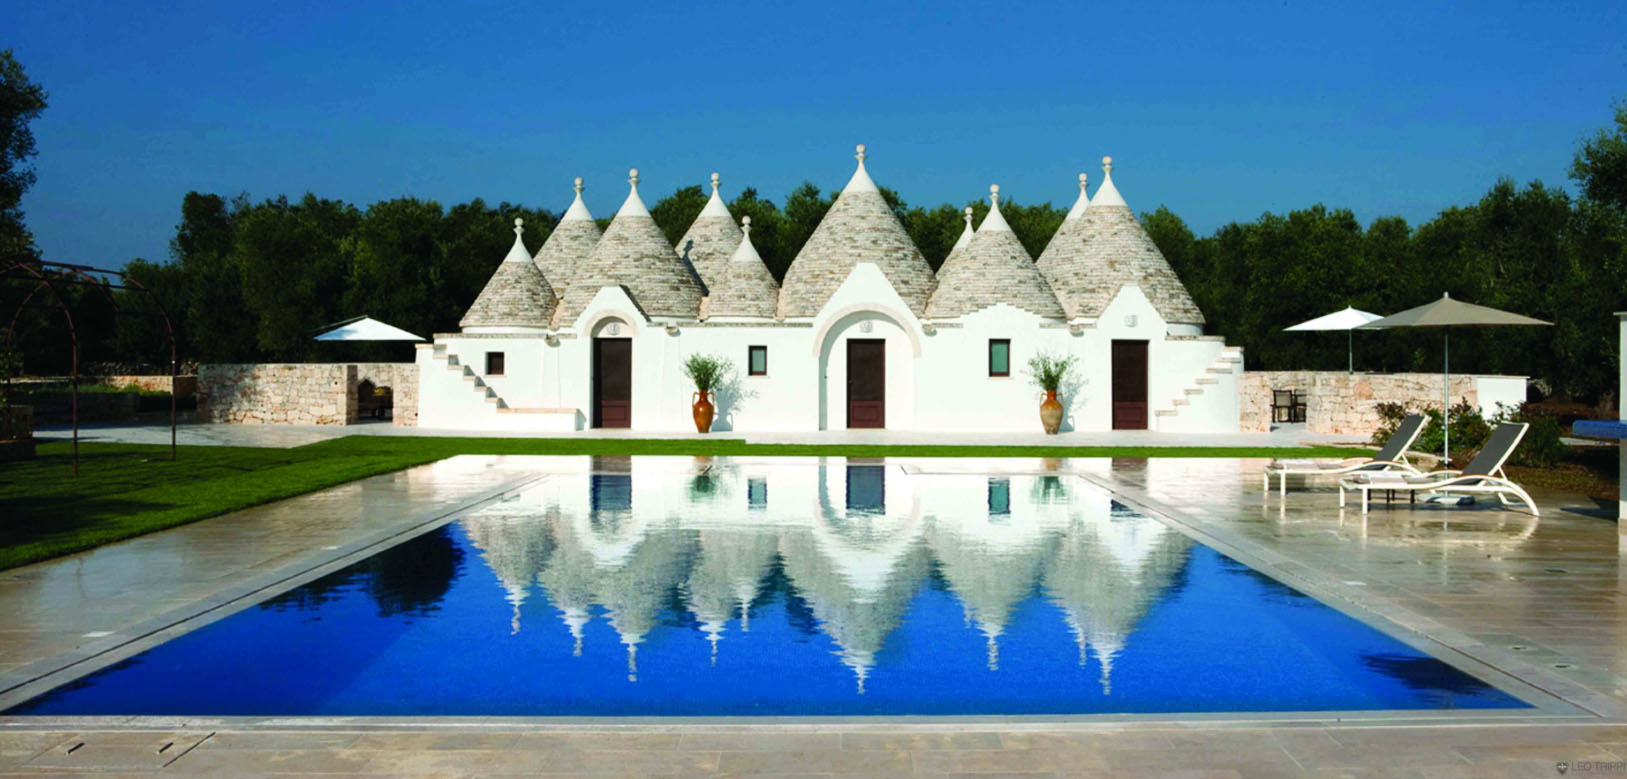 The trullo an exclusive private villa in southern italy for 1 homes in italy